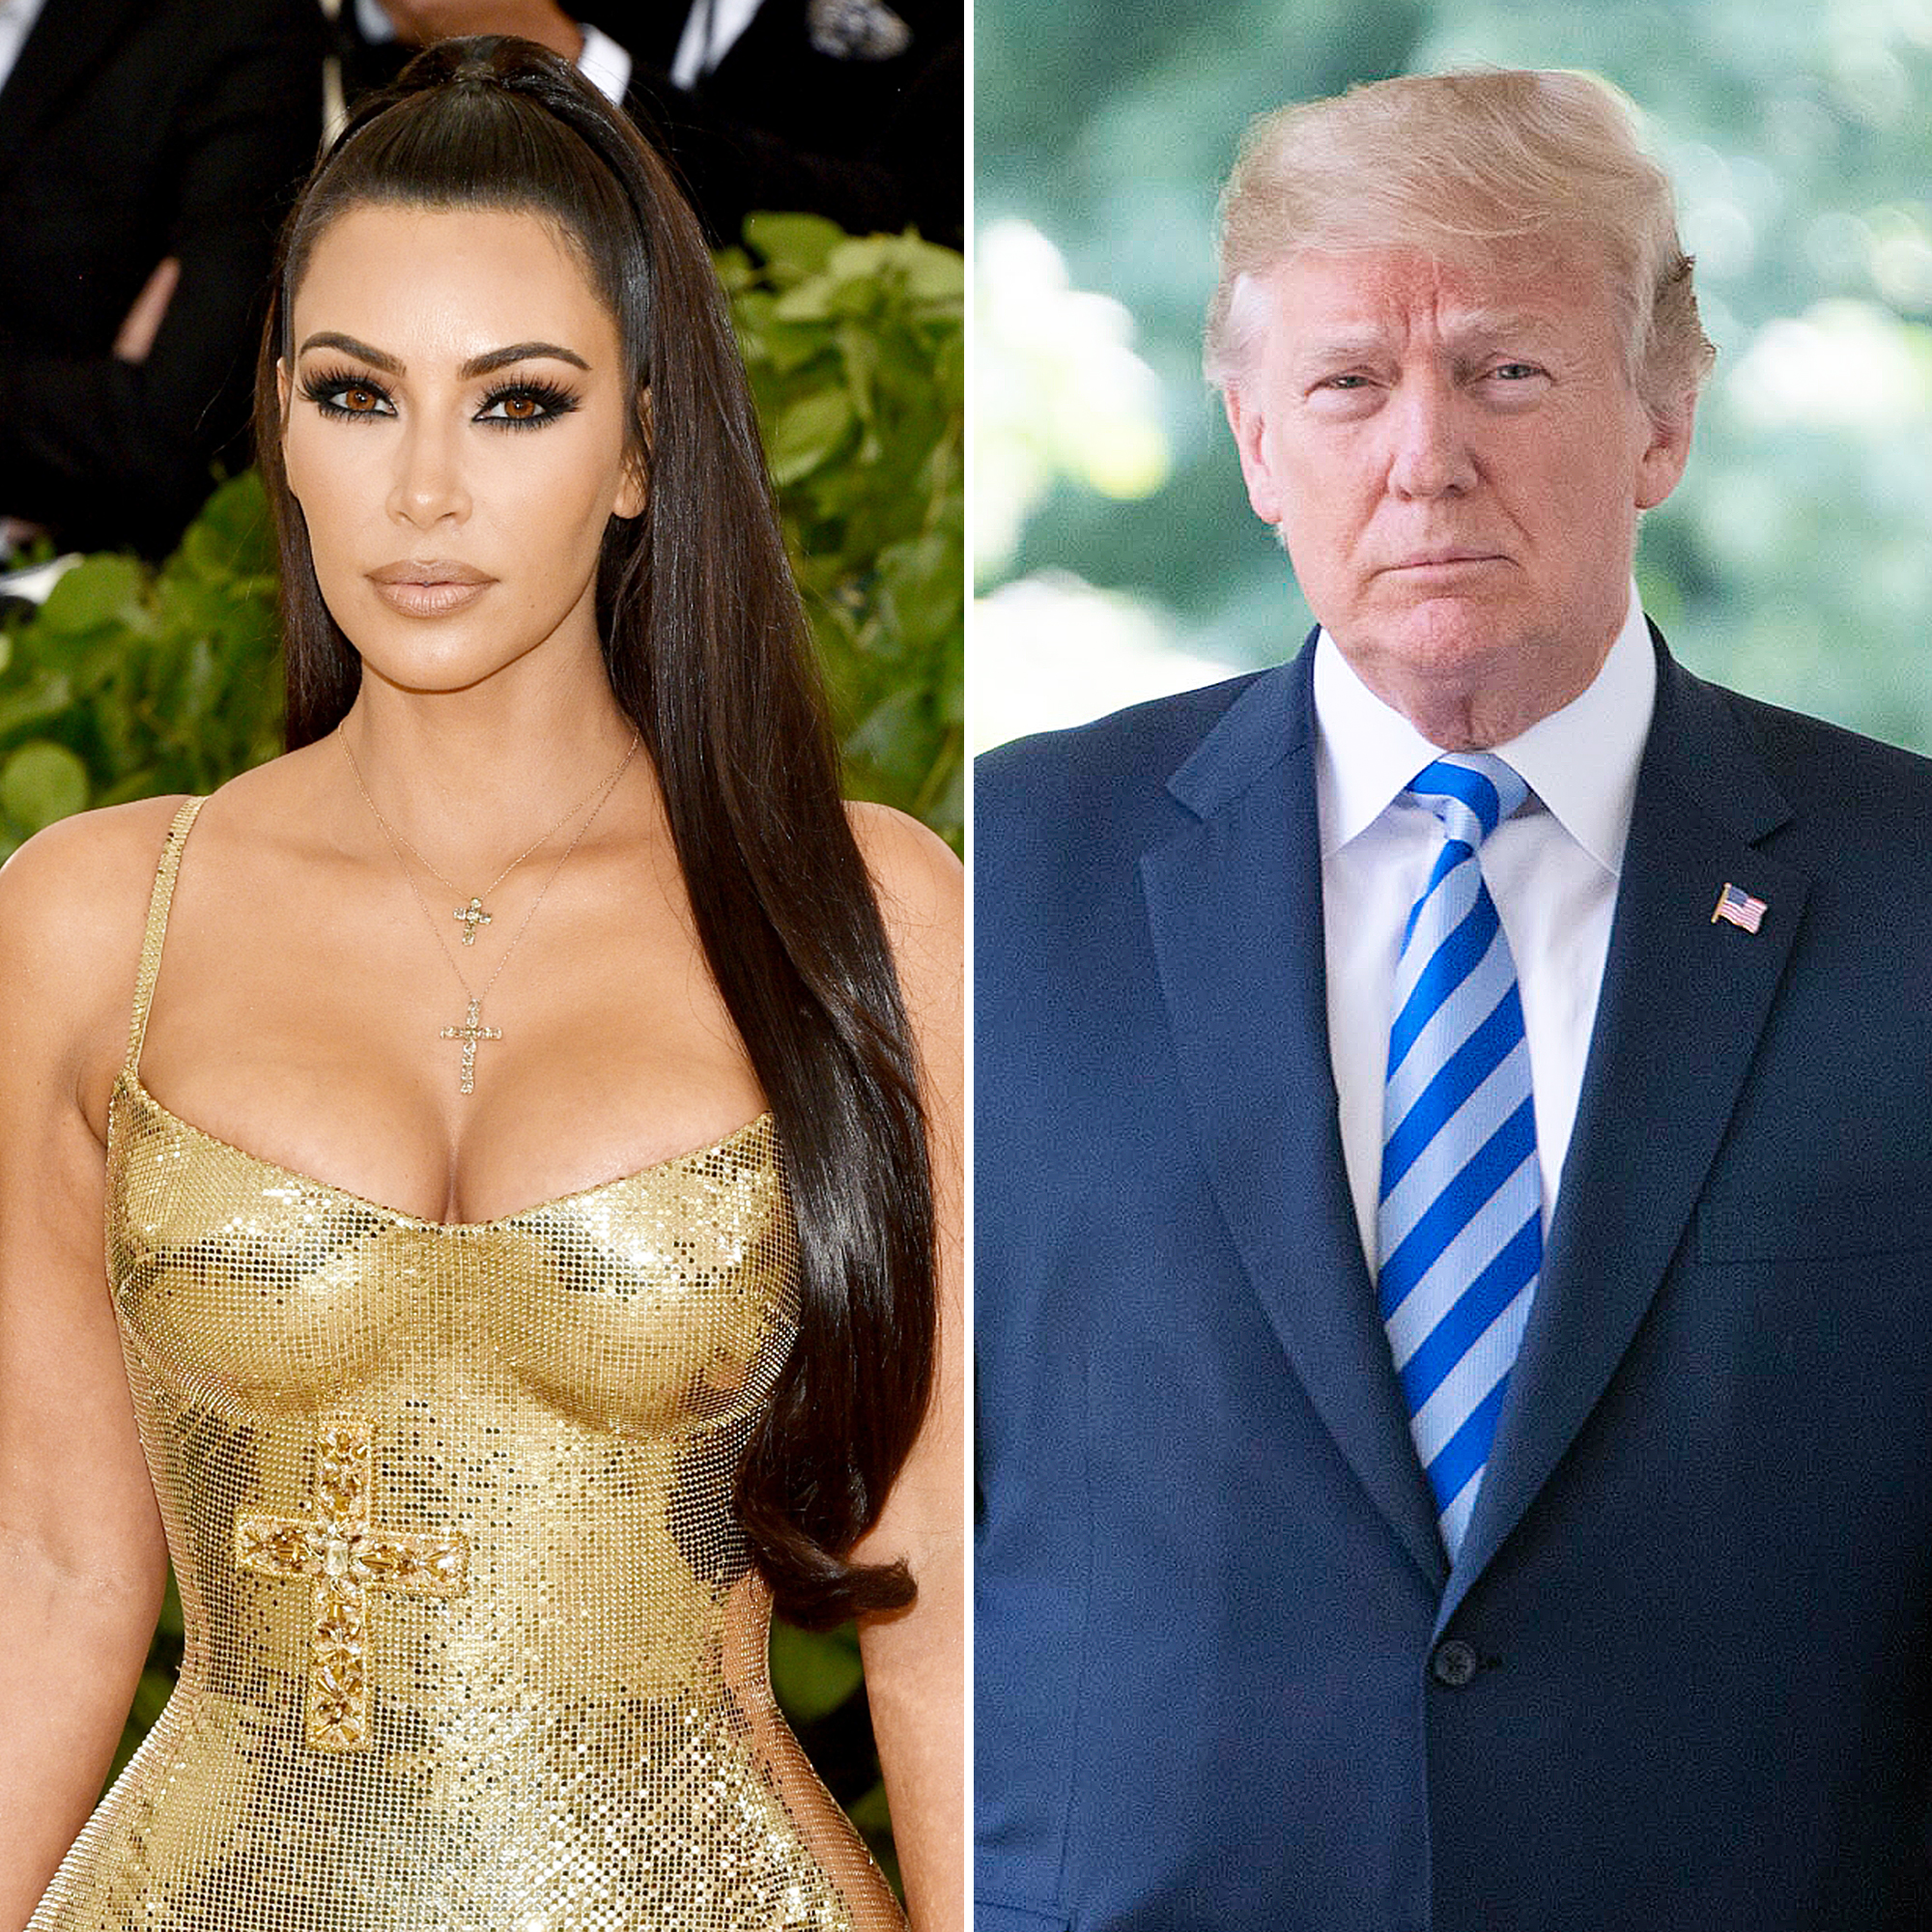 The US President: 'Great meeting with @KimKardashian, talked prison reform'